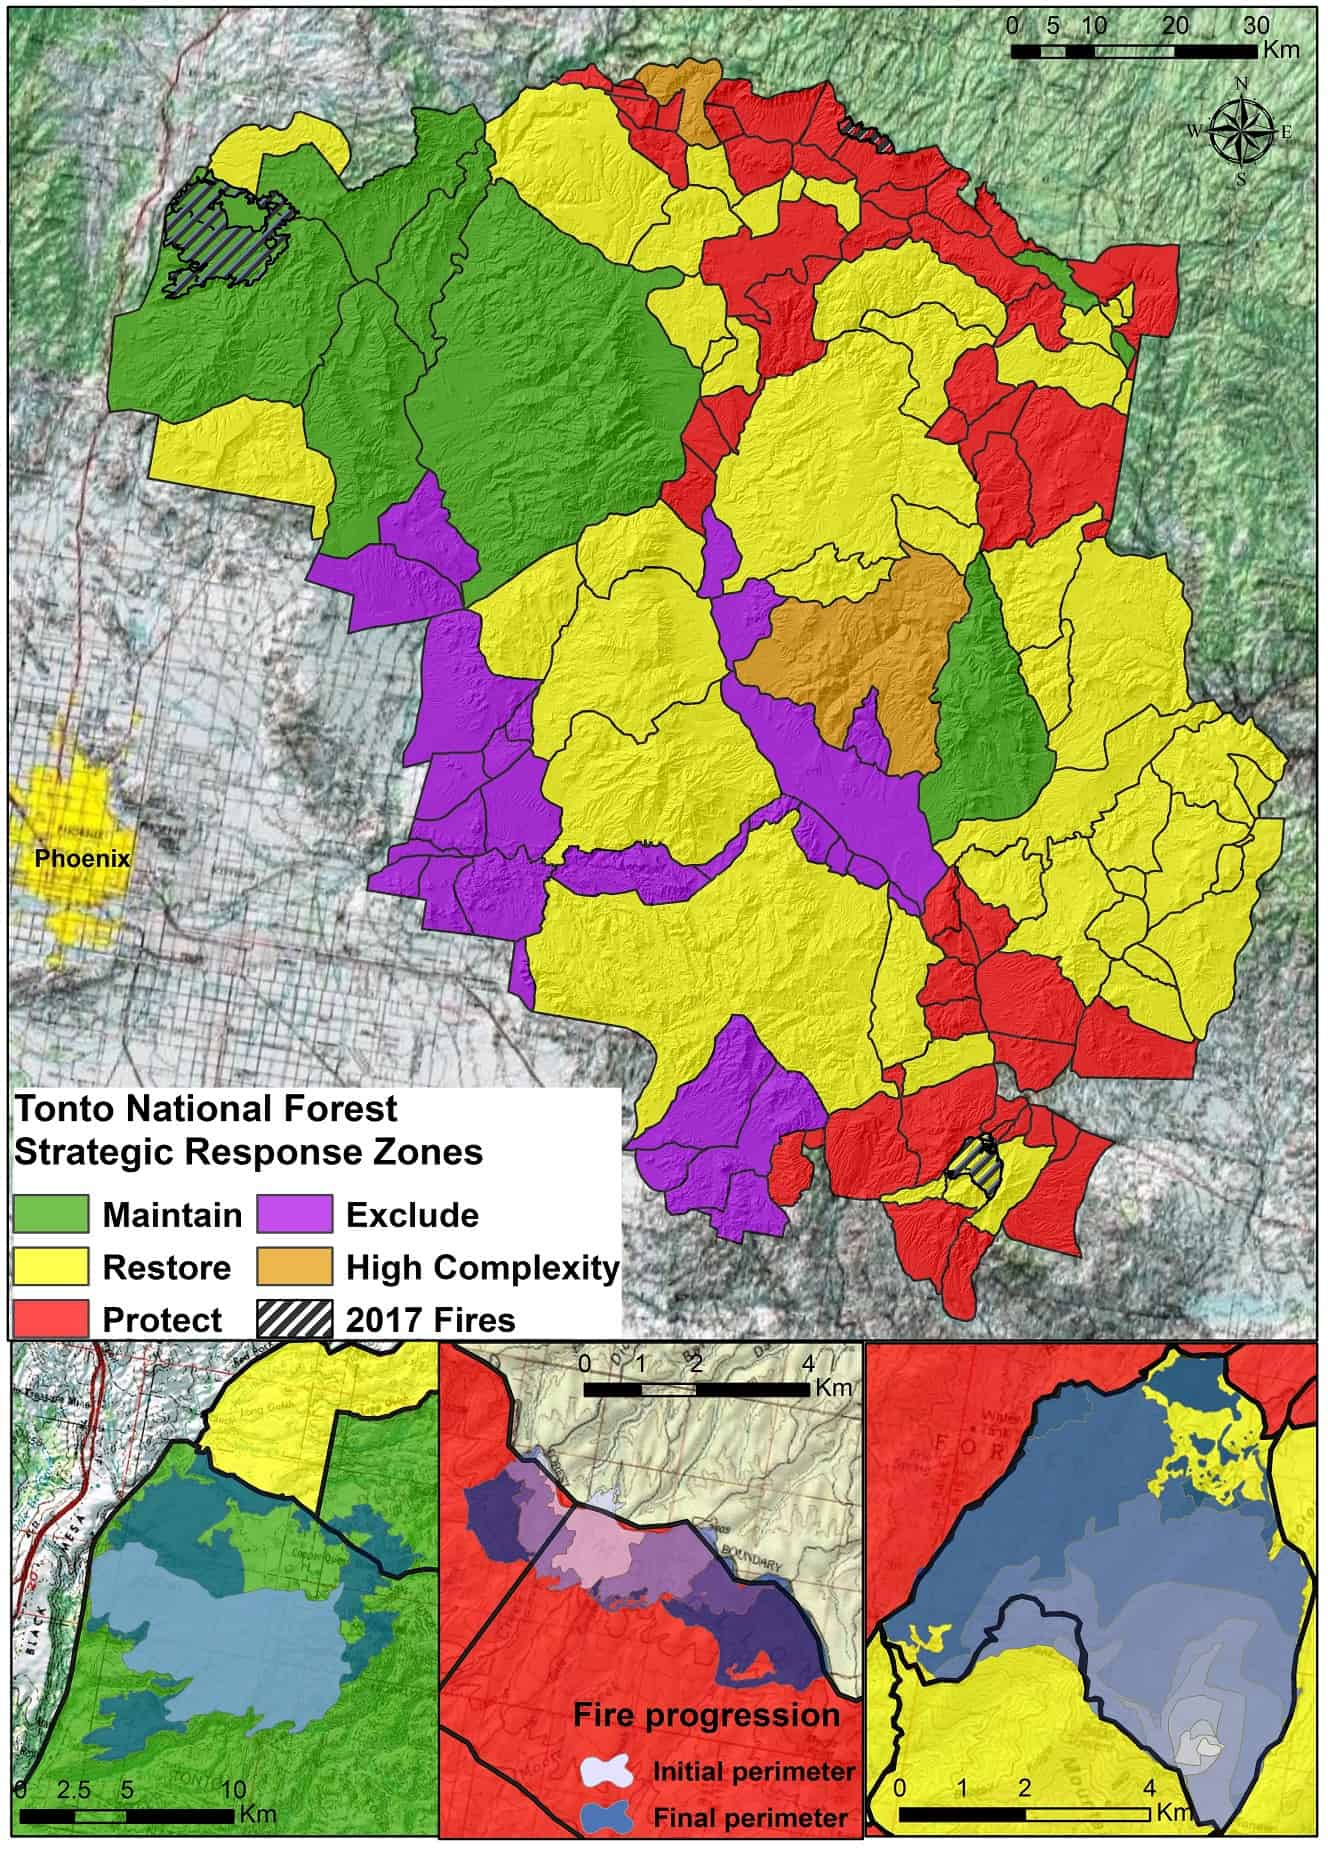 Map of Tonto National Forest's Potential Operational Delineations, color-coded according to the ideal management strategy for each respective POD.